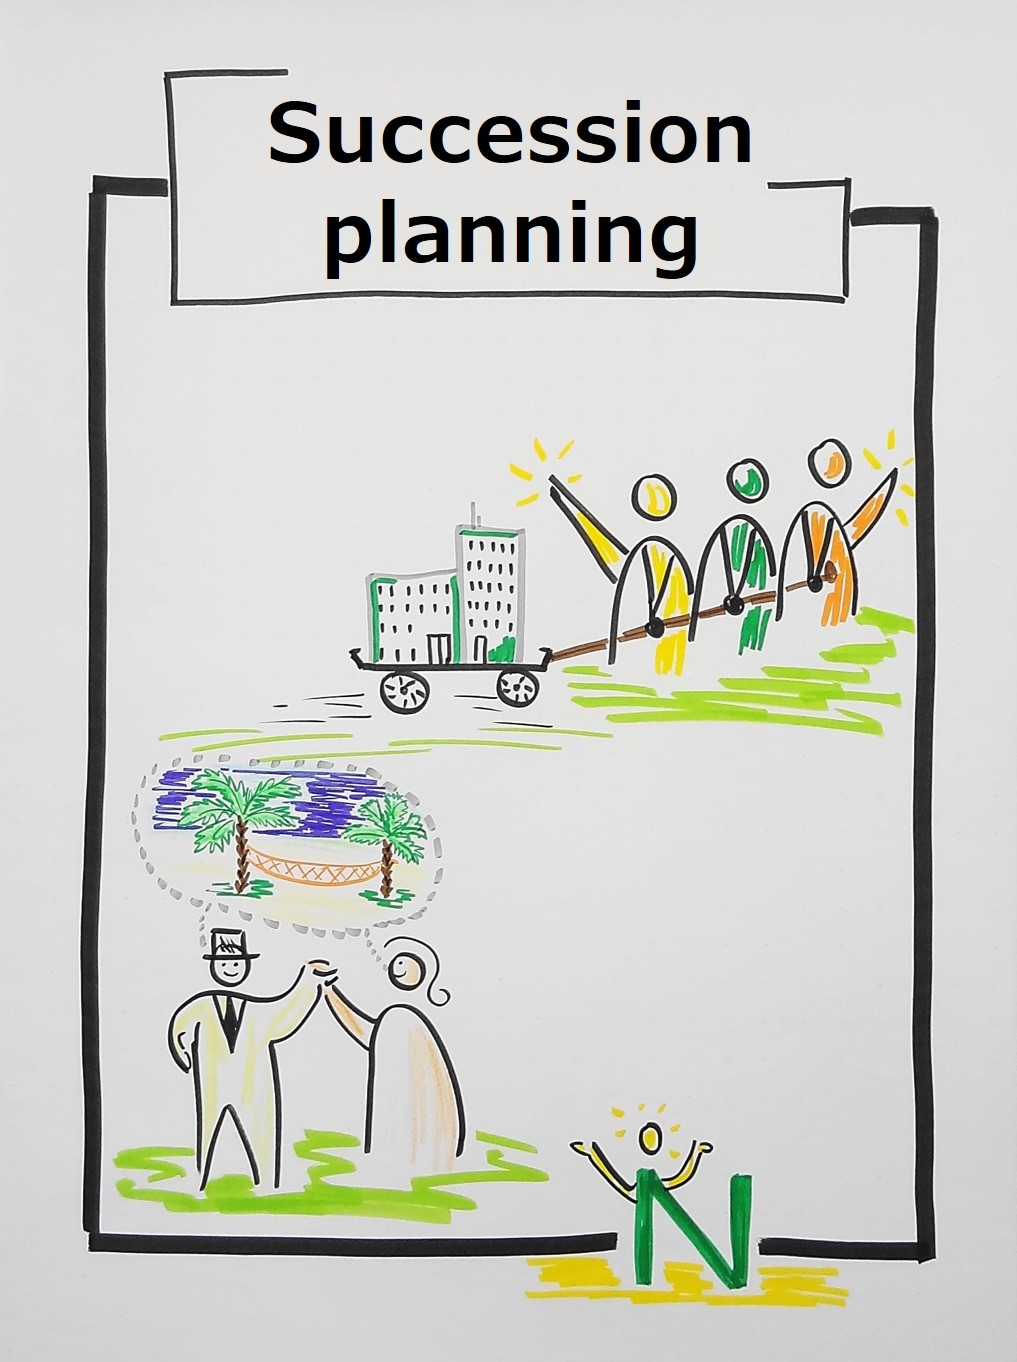 Succession planning applies not only to the company itself, but also to the career development of employees